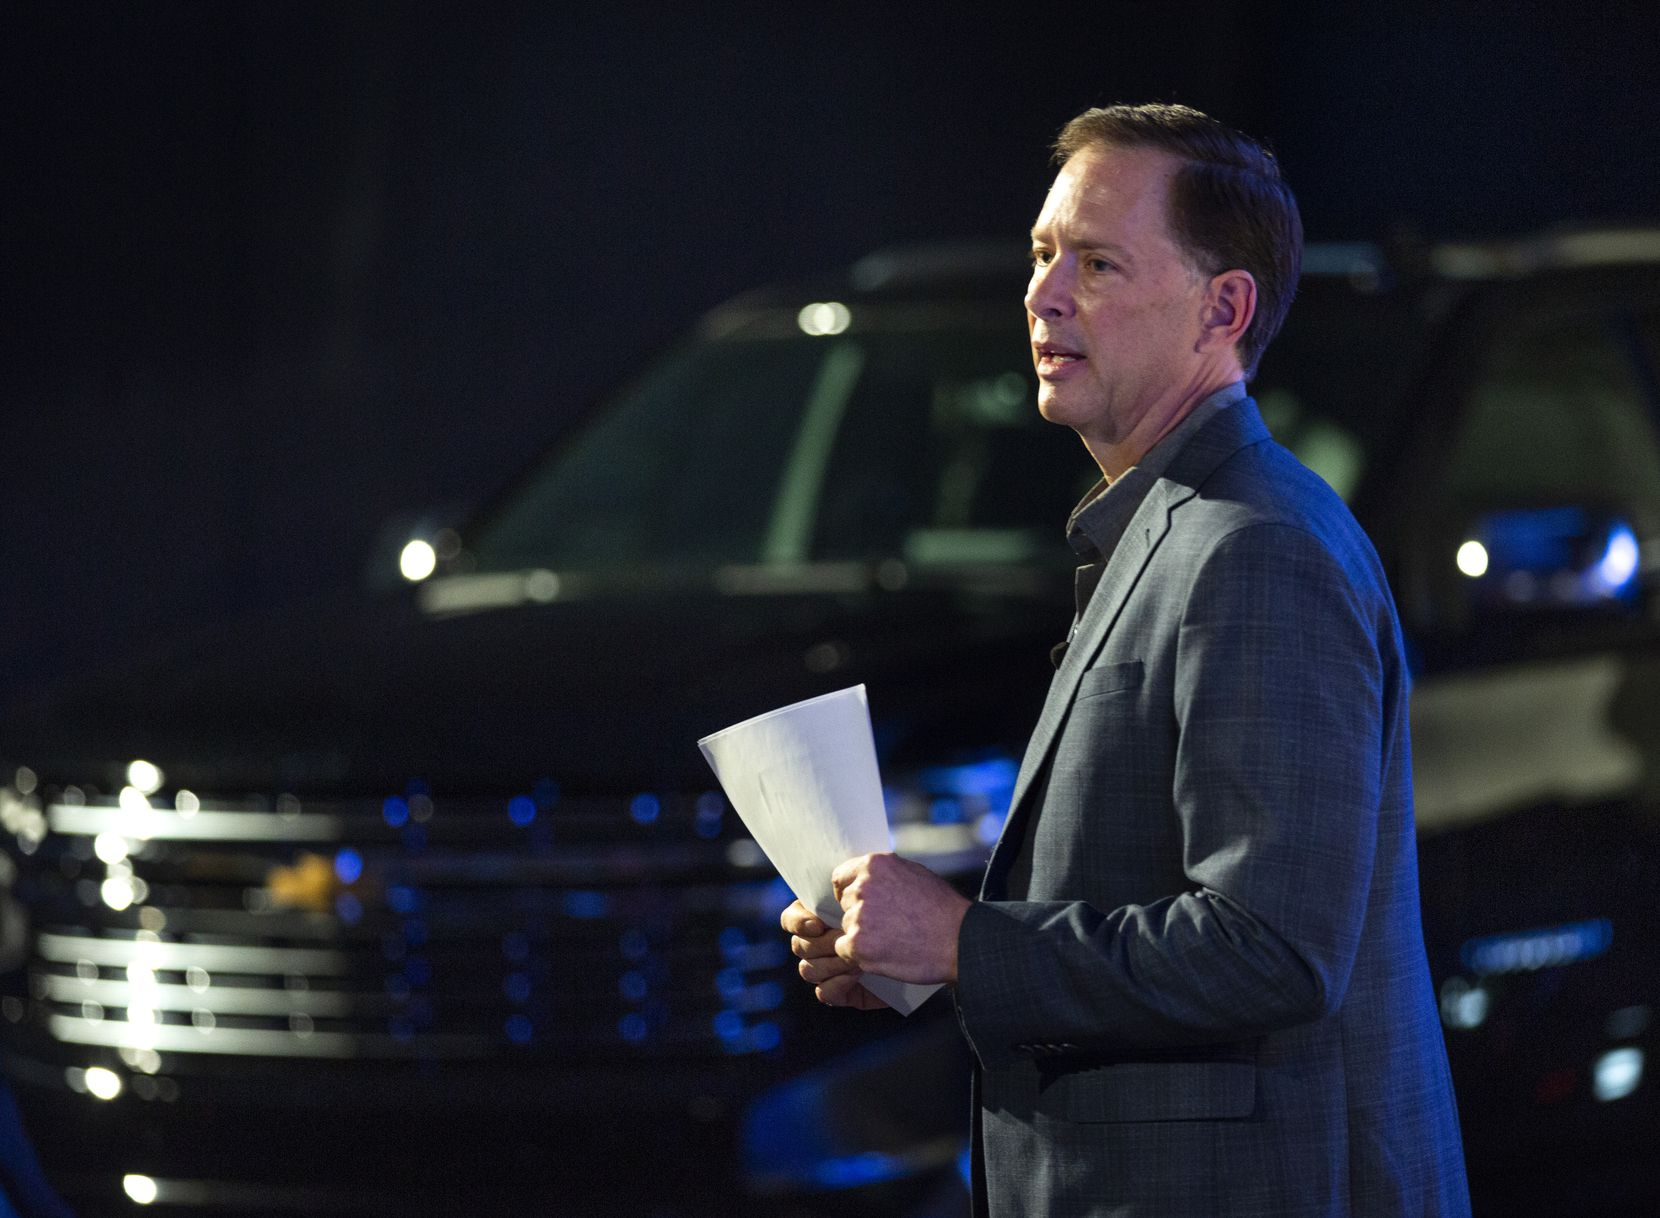 Plant executive director Bill Kulhanek stands before the new Chevrolet Suburban during the unveiling event of the next-generation models of the Chevy Suburban and Tahoe at the General Motors Assembly Plant in Arlington, Texas, on Tuesday, Dec. 10, 2019. (Lynda M. Gonzalez/The Dallas Morning News) ORG XMIT: 20048667B